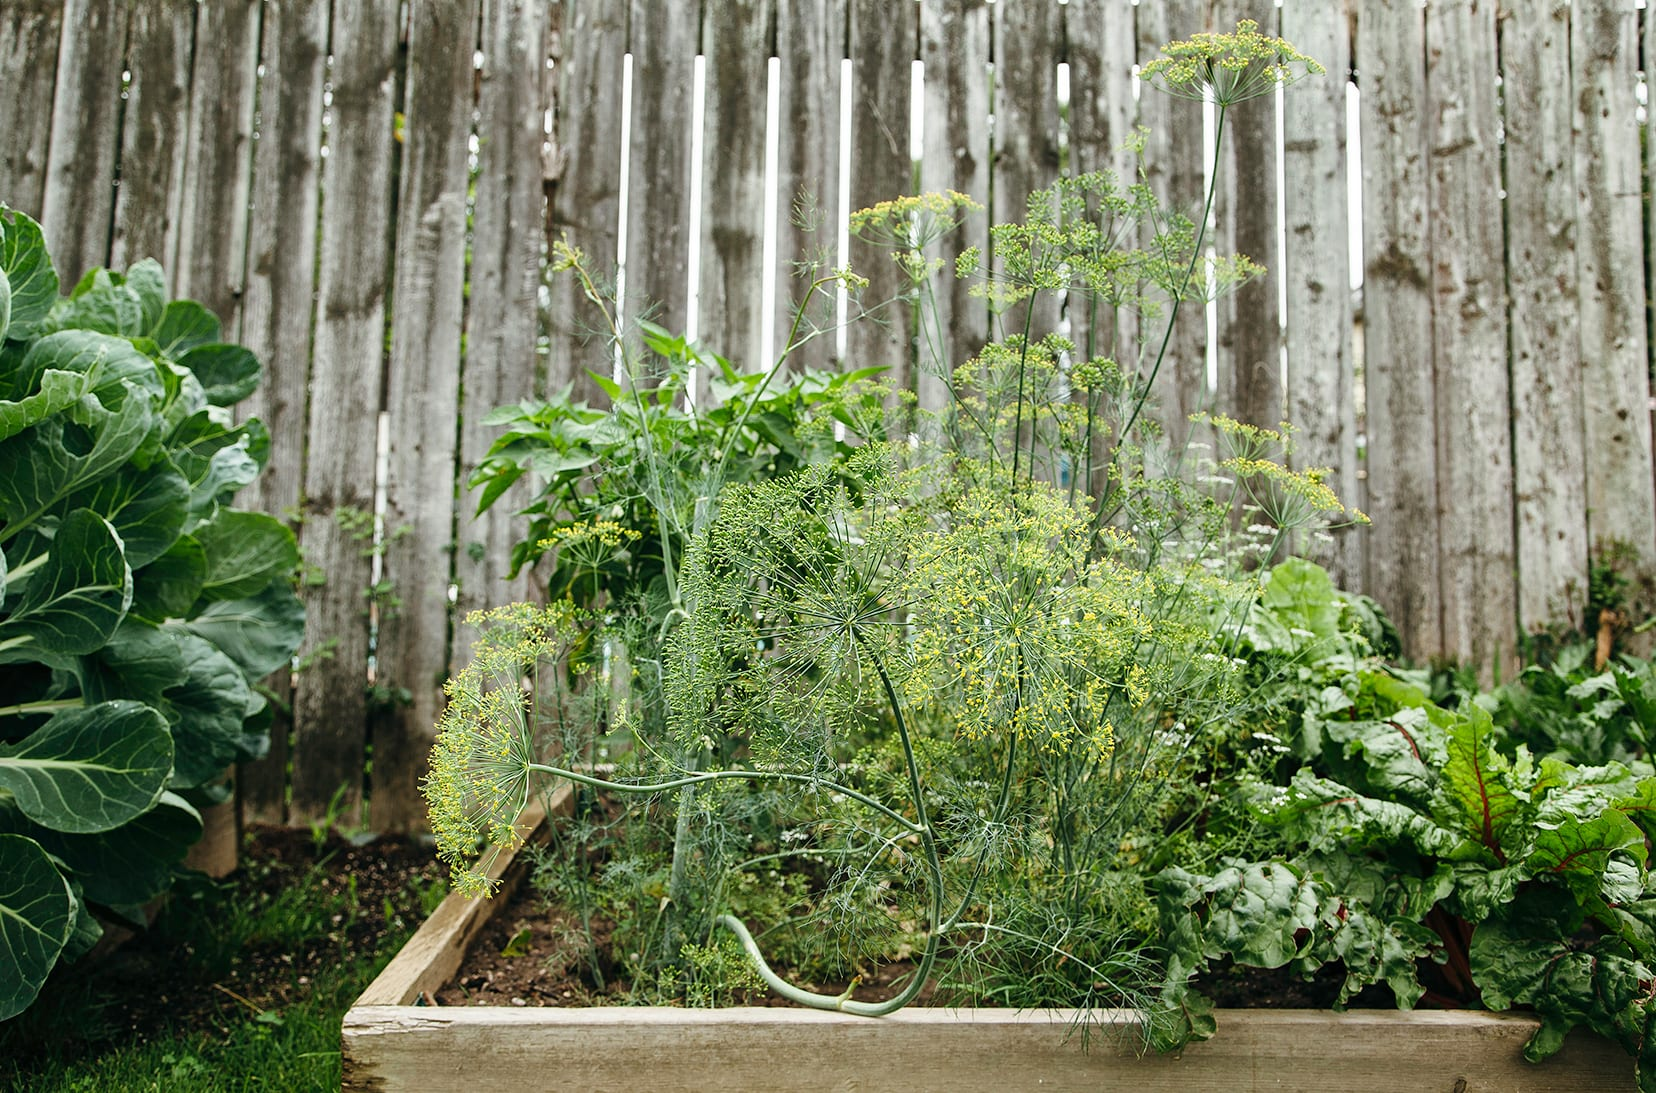 A head-on image of a vegetable garden with a wooden fence in the background.